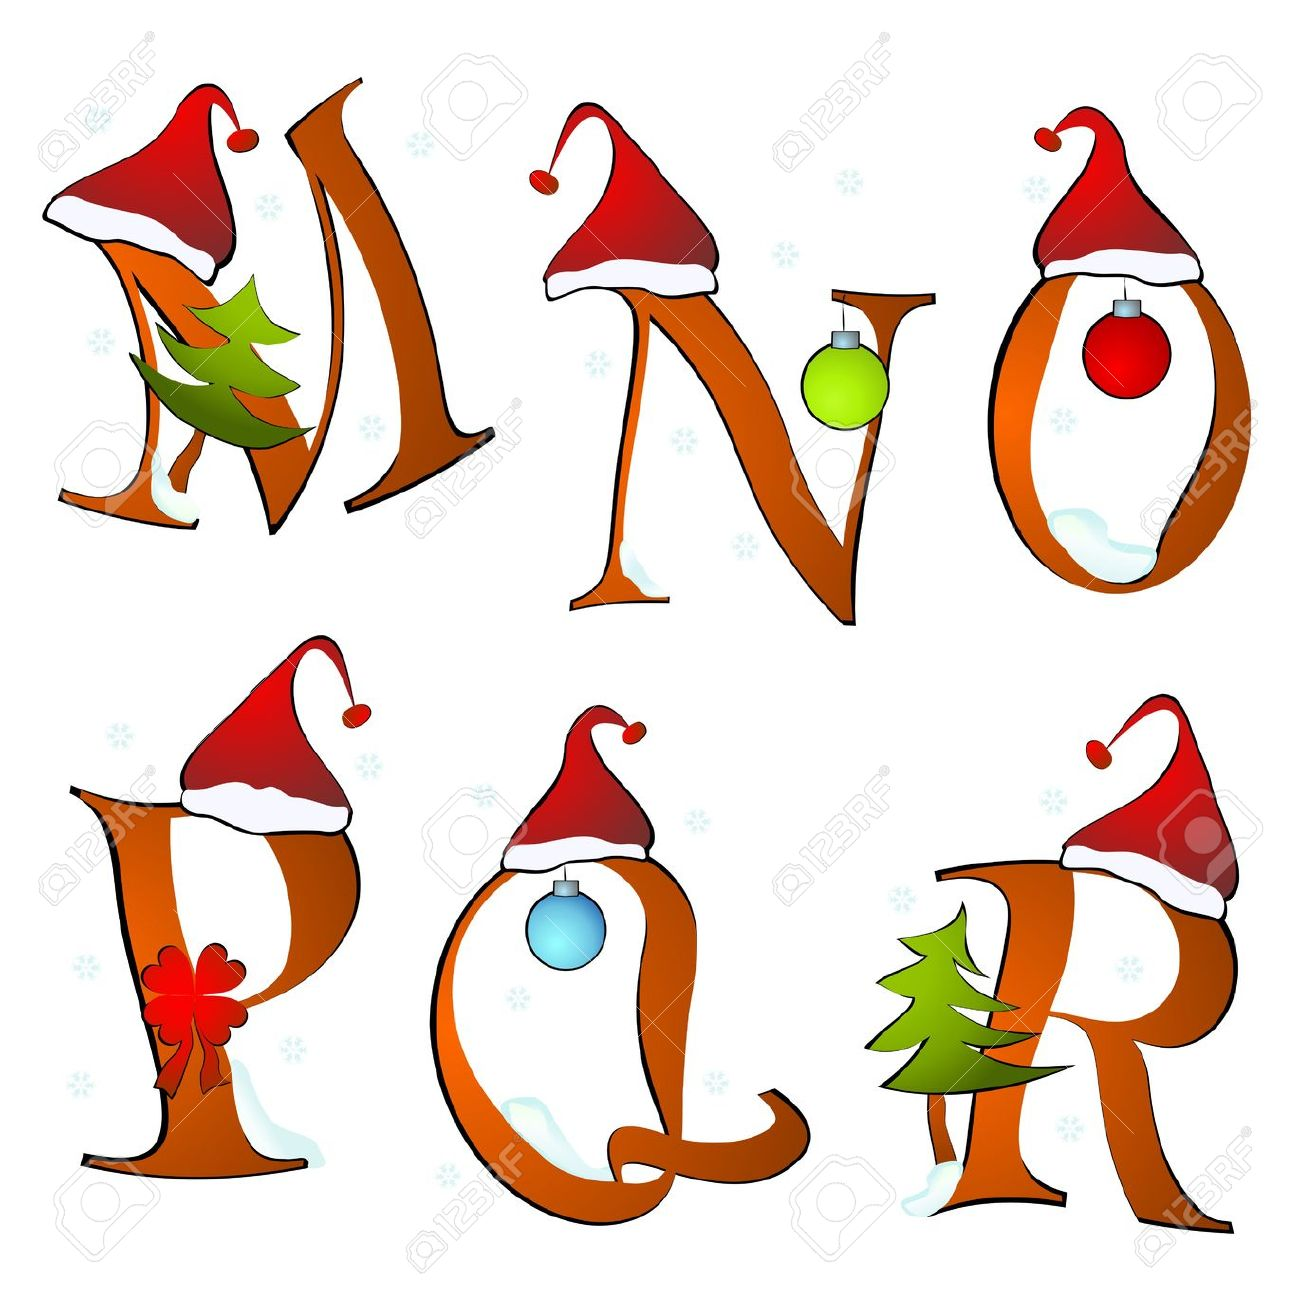 This is an image of Eloquent Christmas Letter Clipart